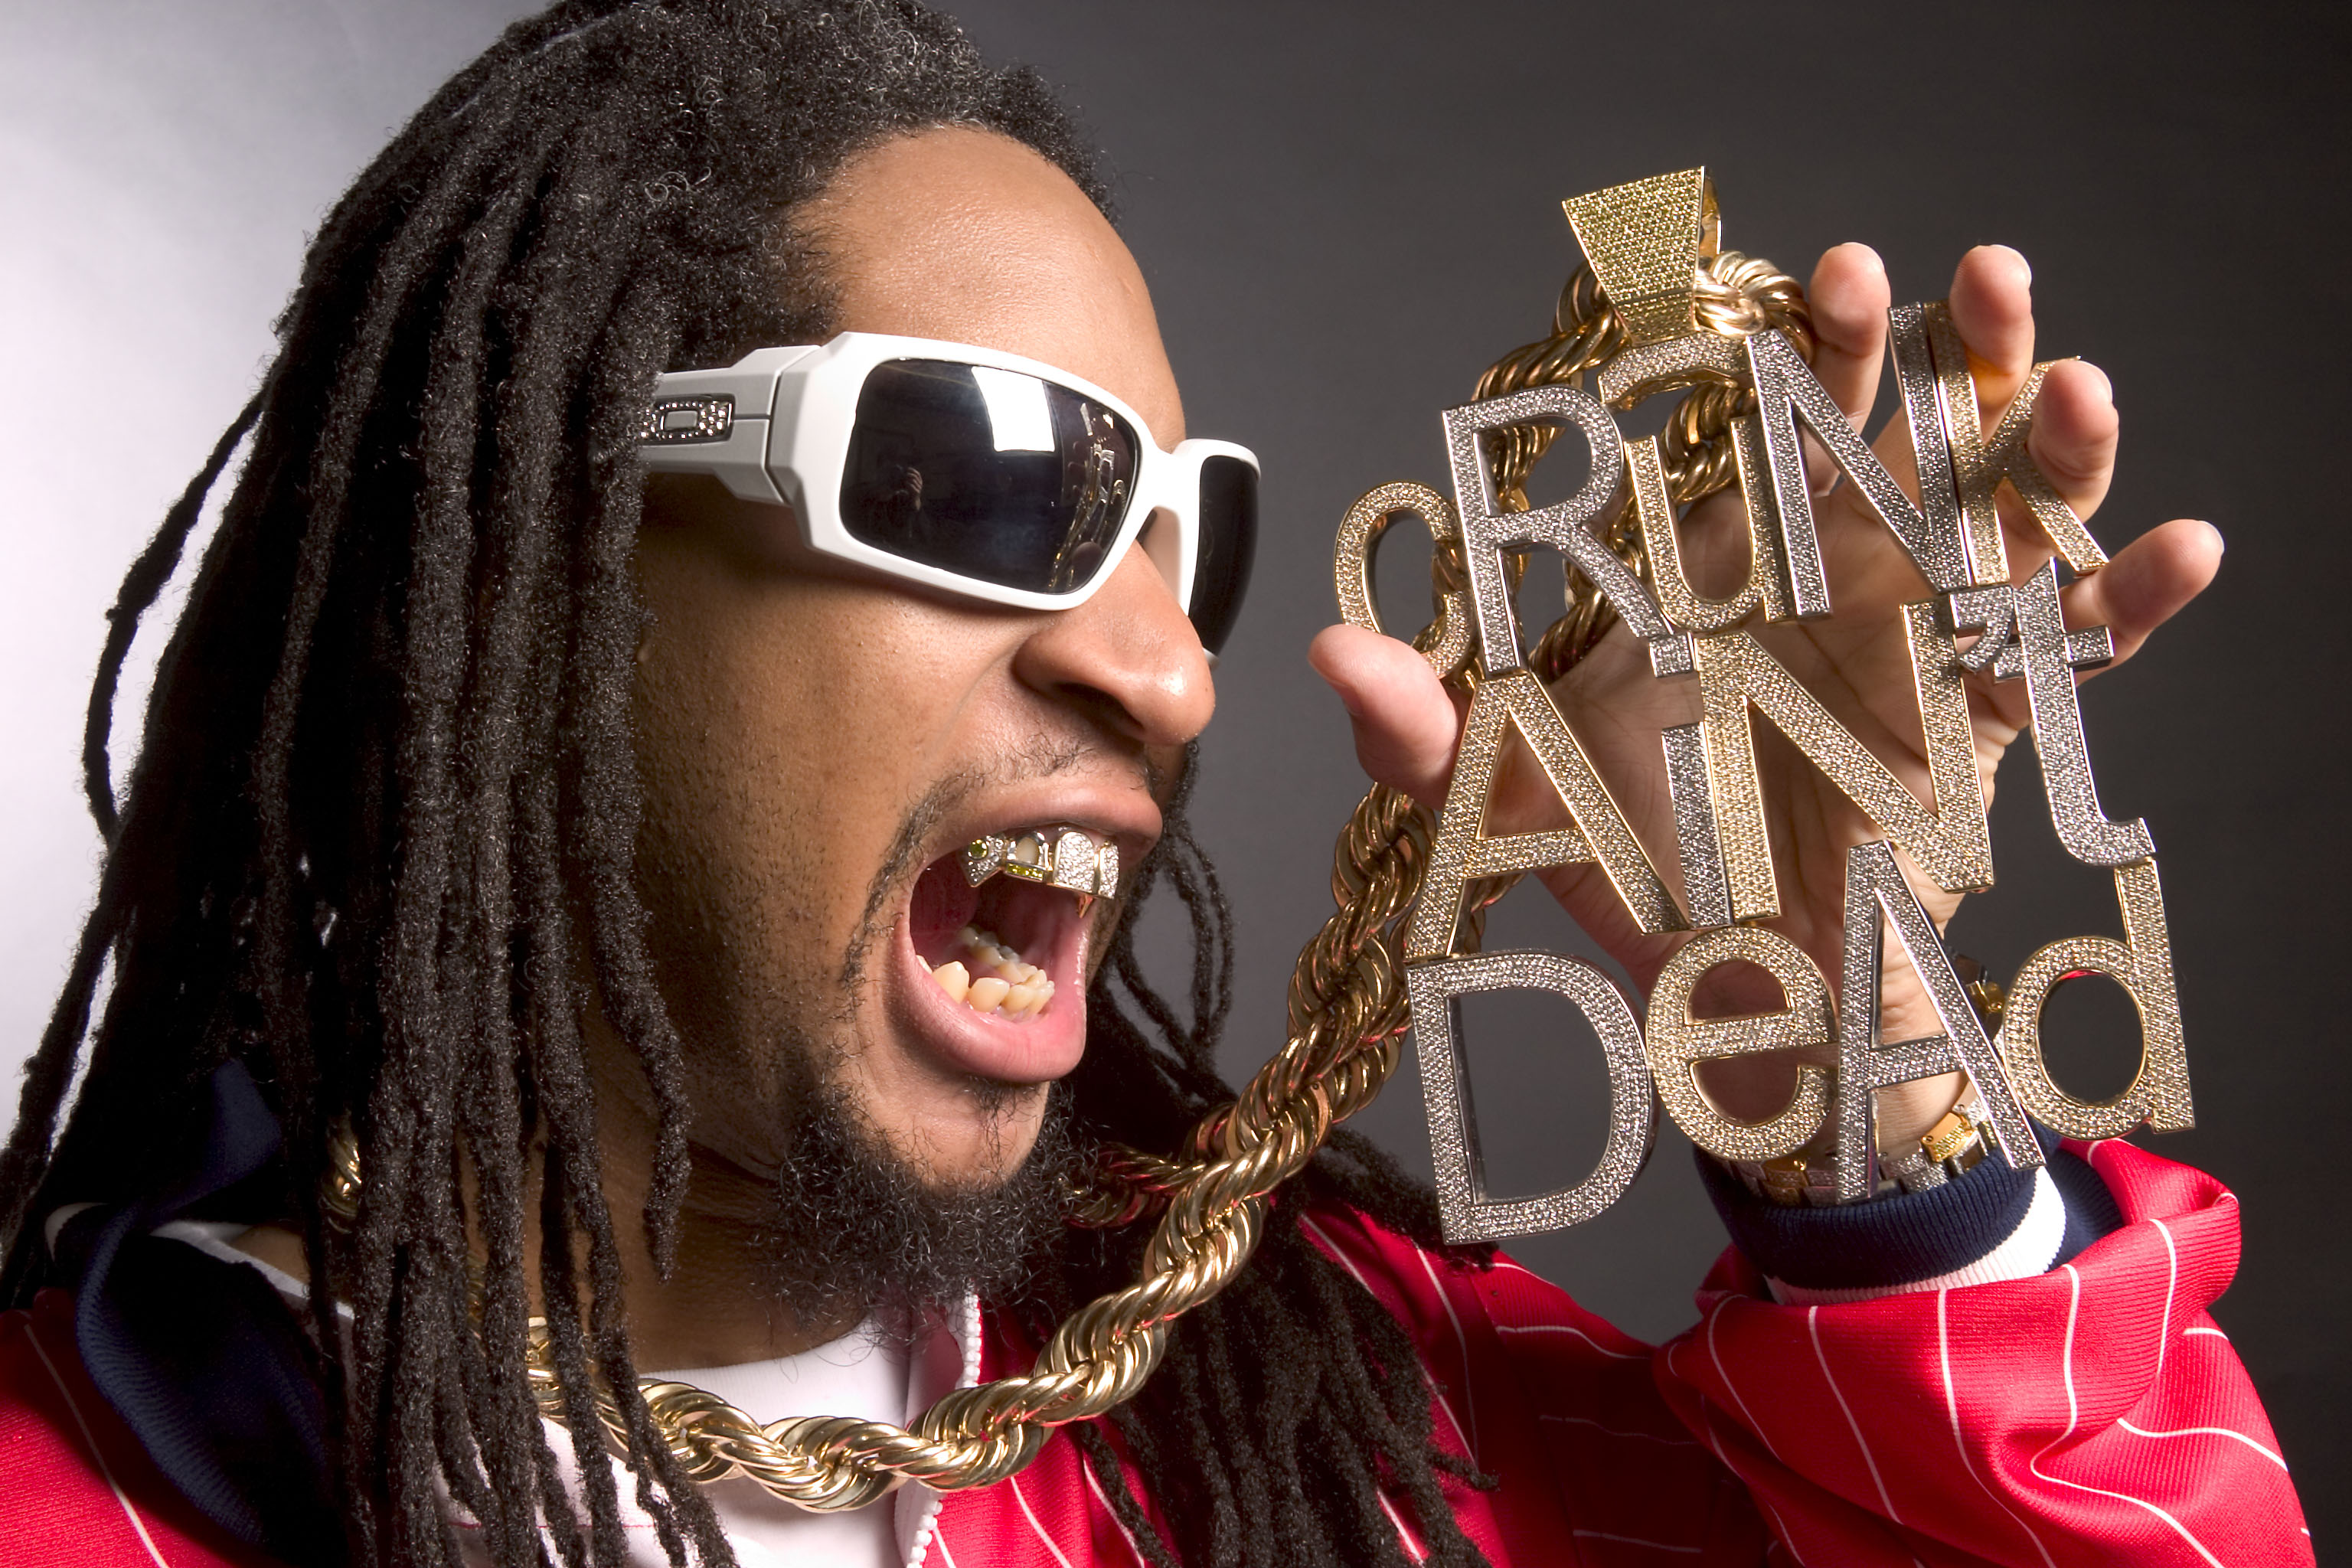 THE KING OF CRUNK IS BACK LIL JON READIES NEW CLUB ALBUM 3072x2048